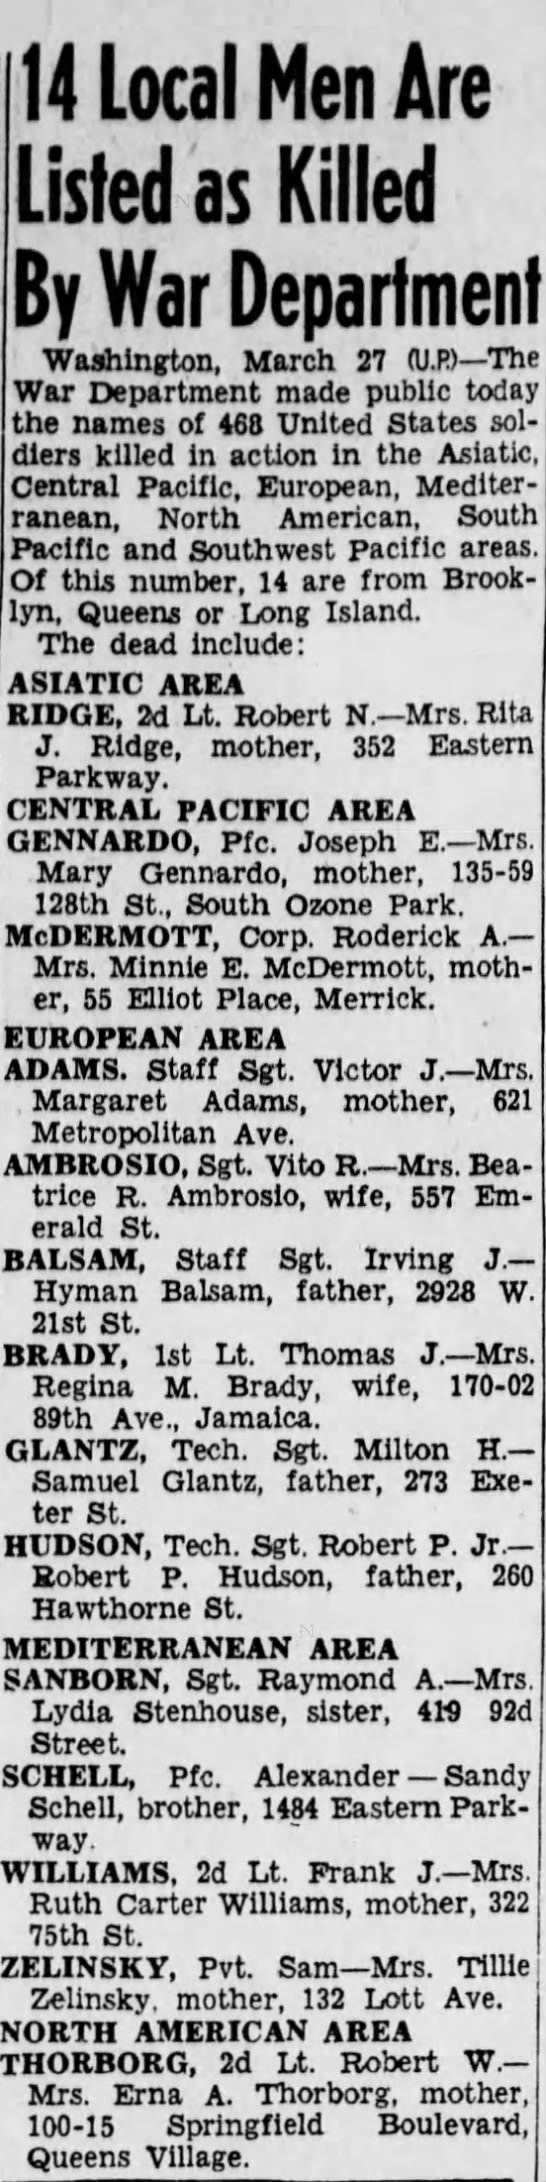 The Brooklyn Daily Eagle, 28 March 1944 -